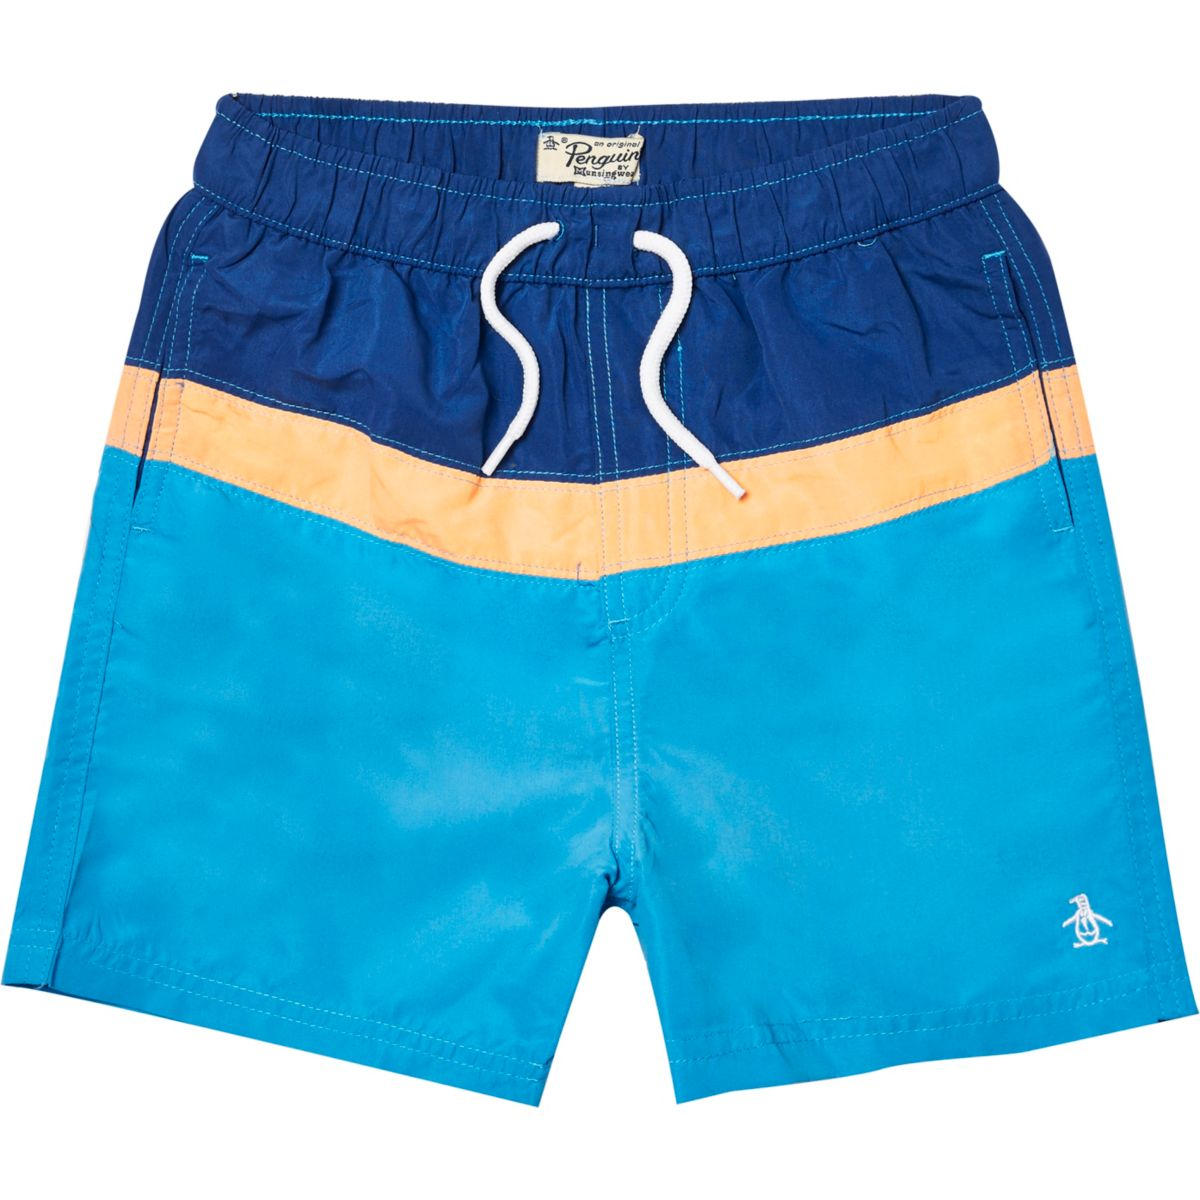 Boys blue Penguin color block swim trunks